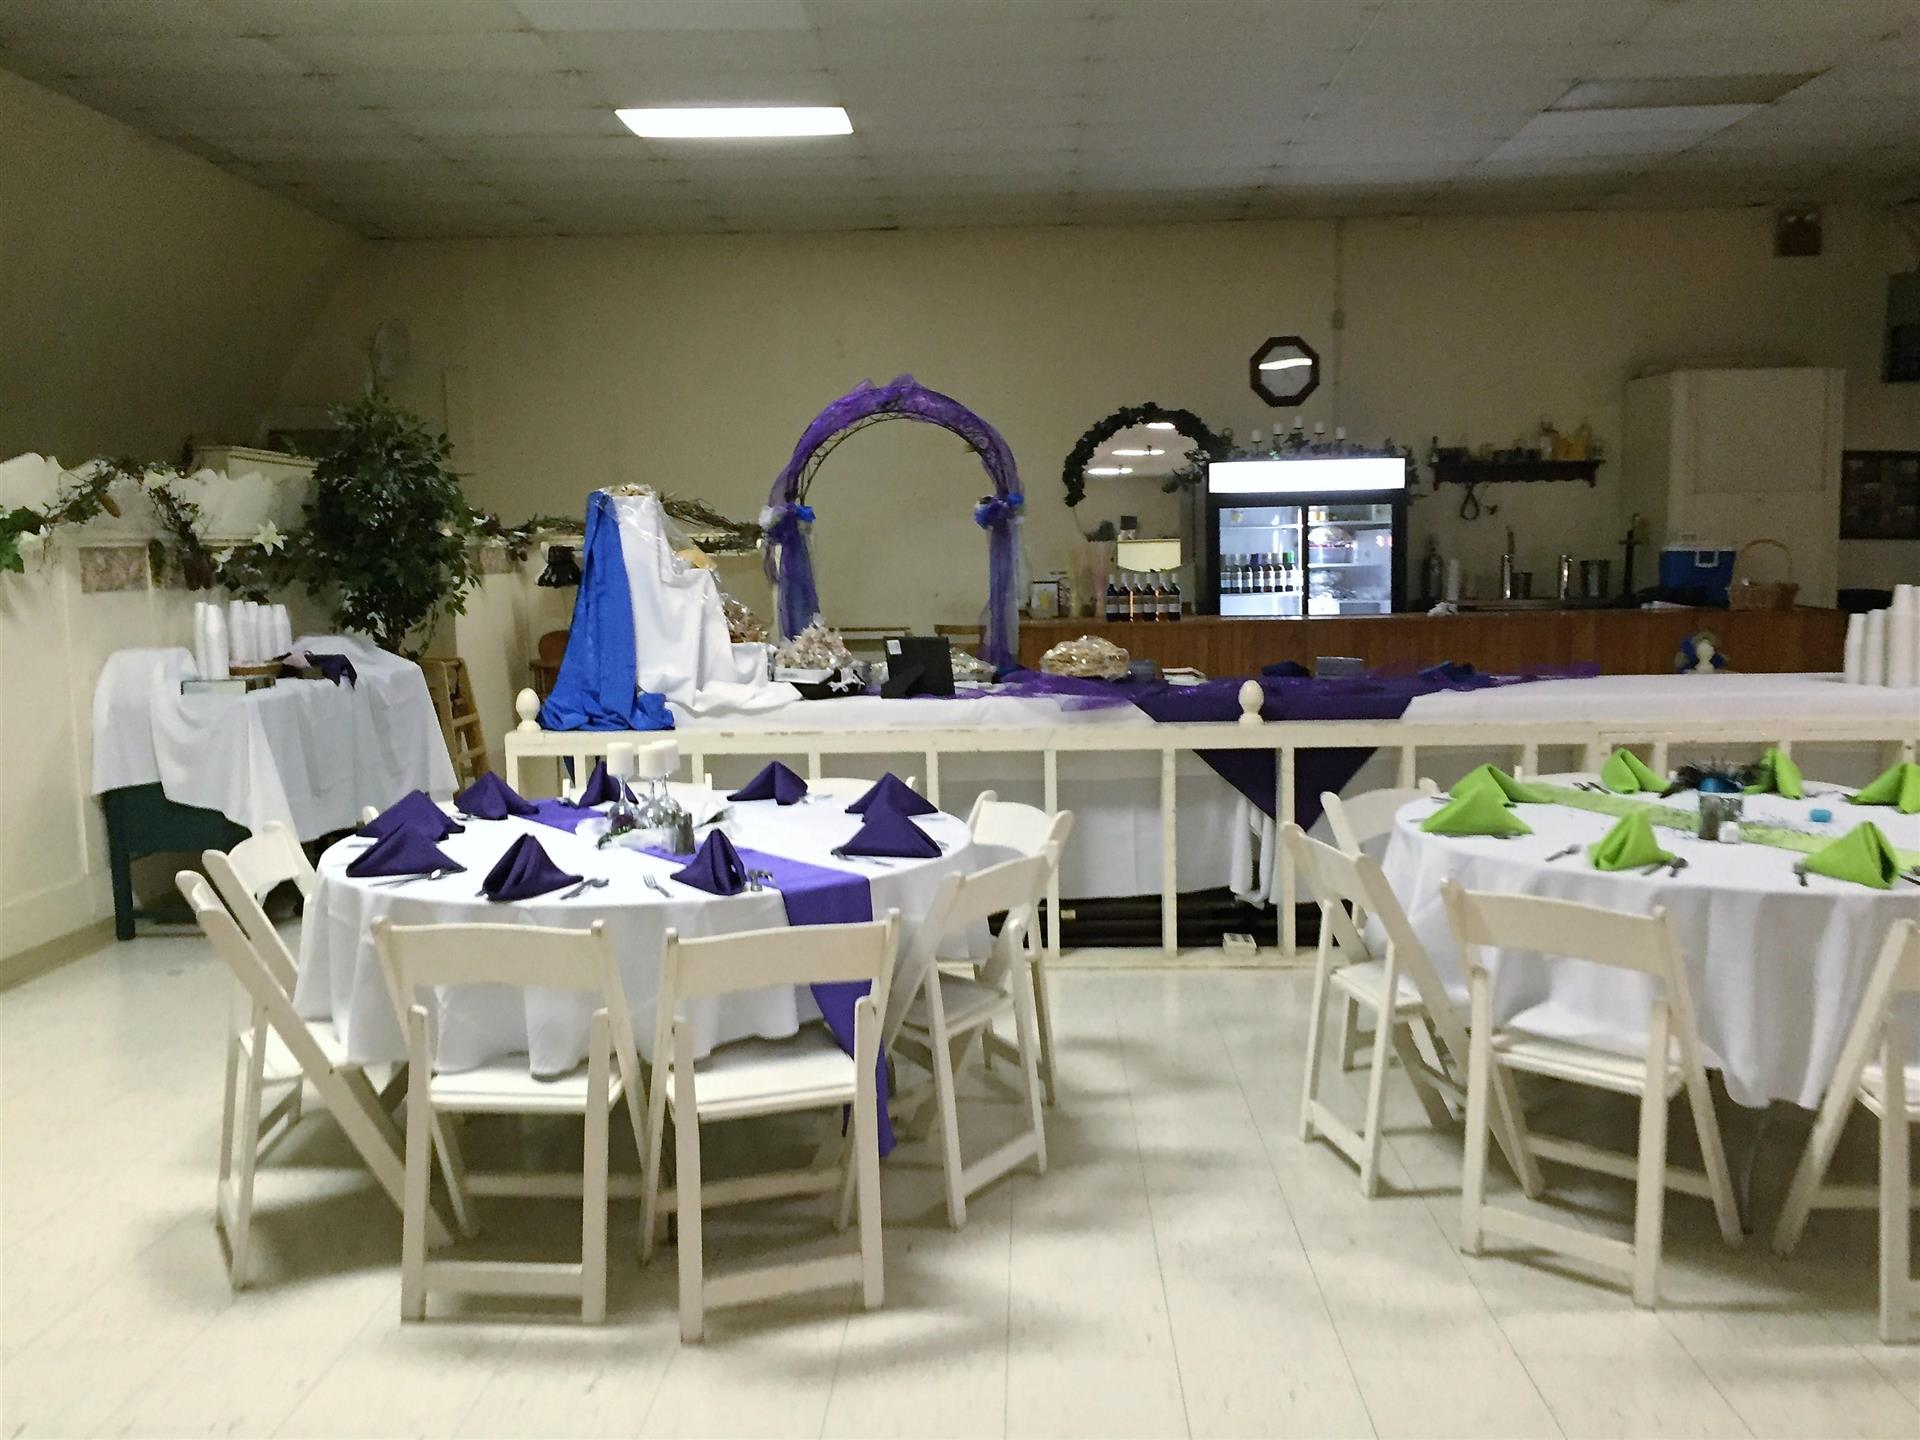 set of circular tables setup with tablecloths, folded napkins and ribbon decorations